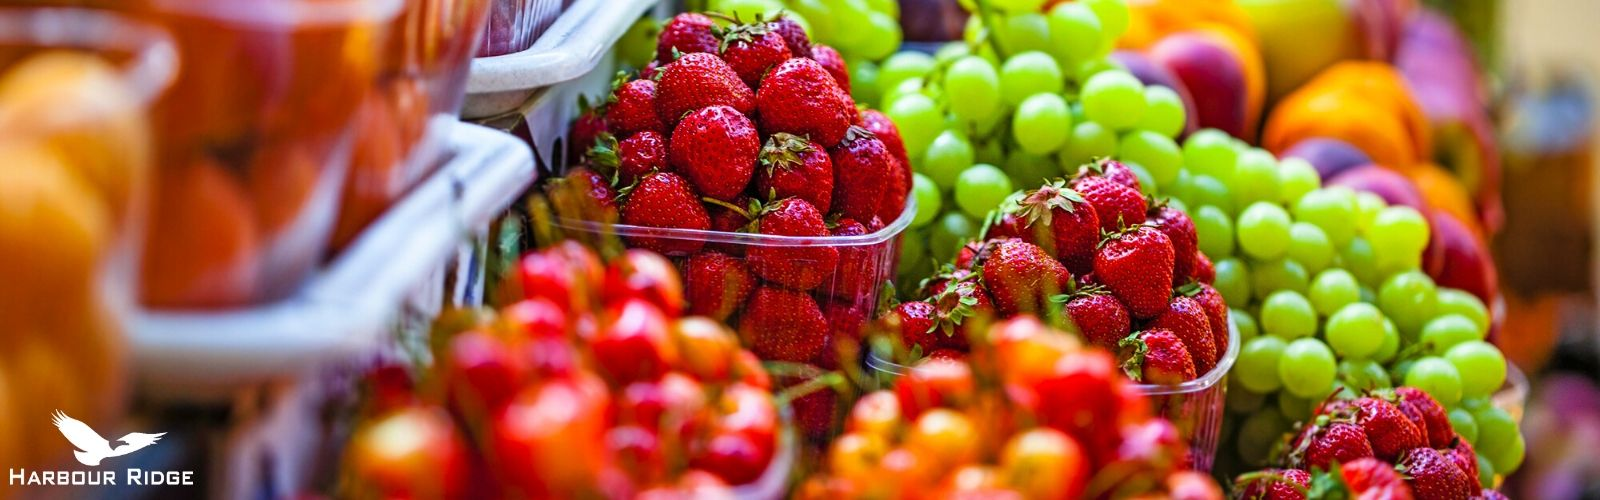 These Farmers' Markets Are A South Florida Morning Tradition